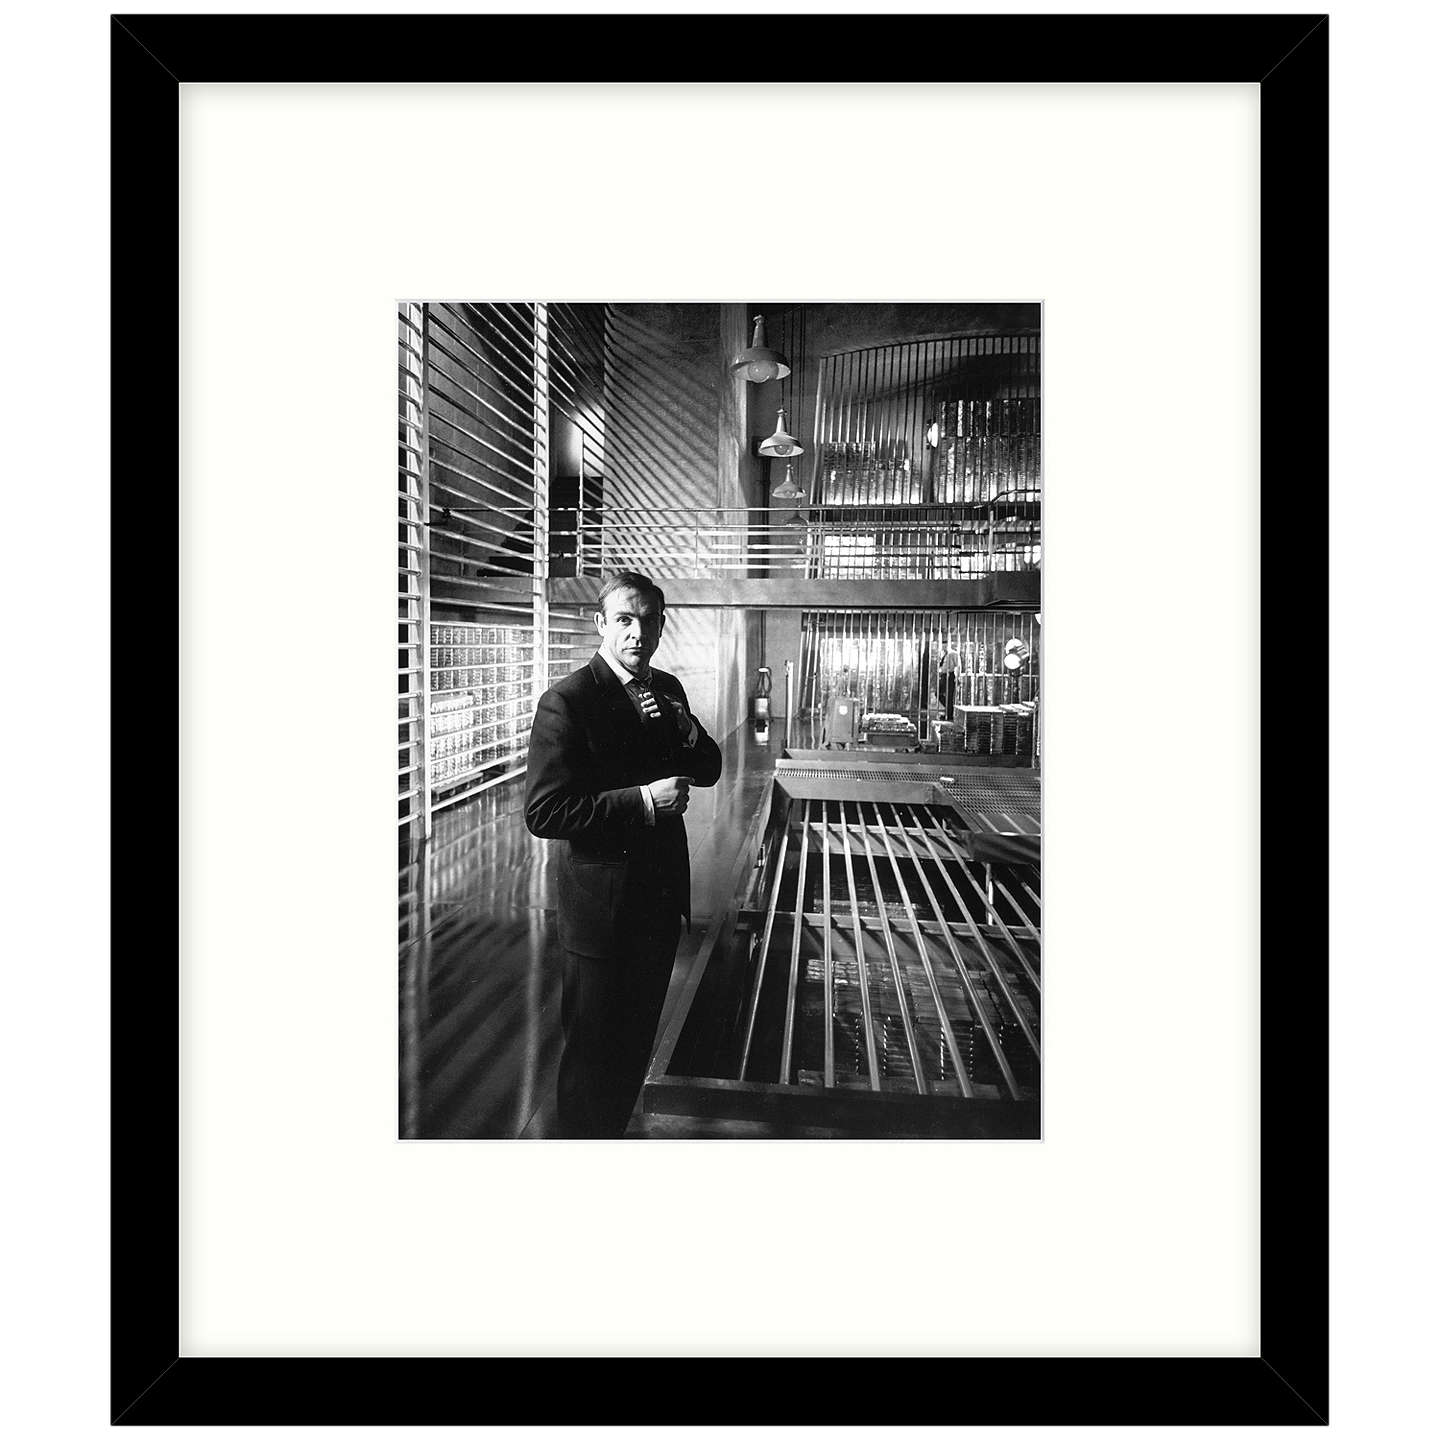 BuyGetty Images Gallery - Goldfinger 1964 Framed Print, 49 x 57cm Online at johnlewis.com